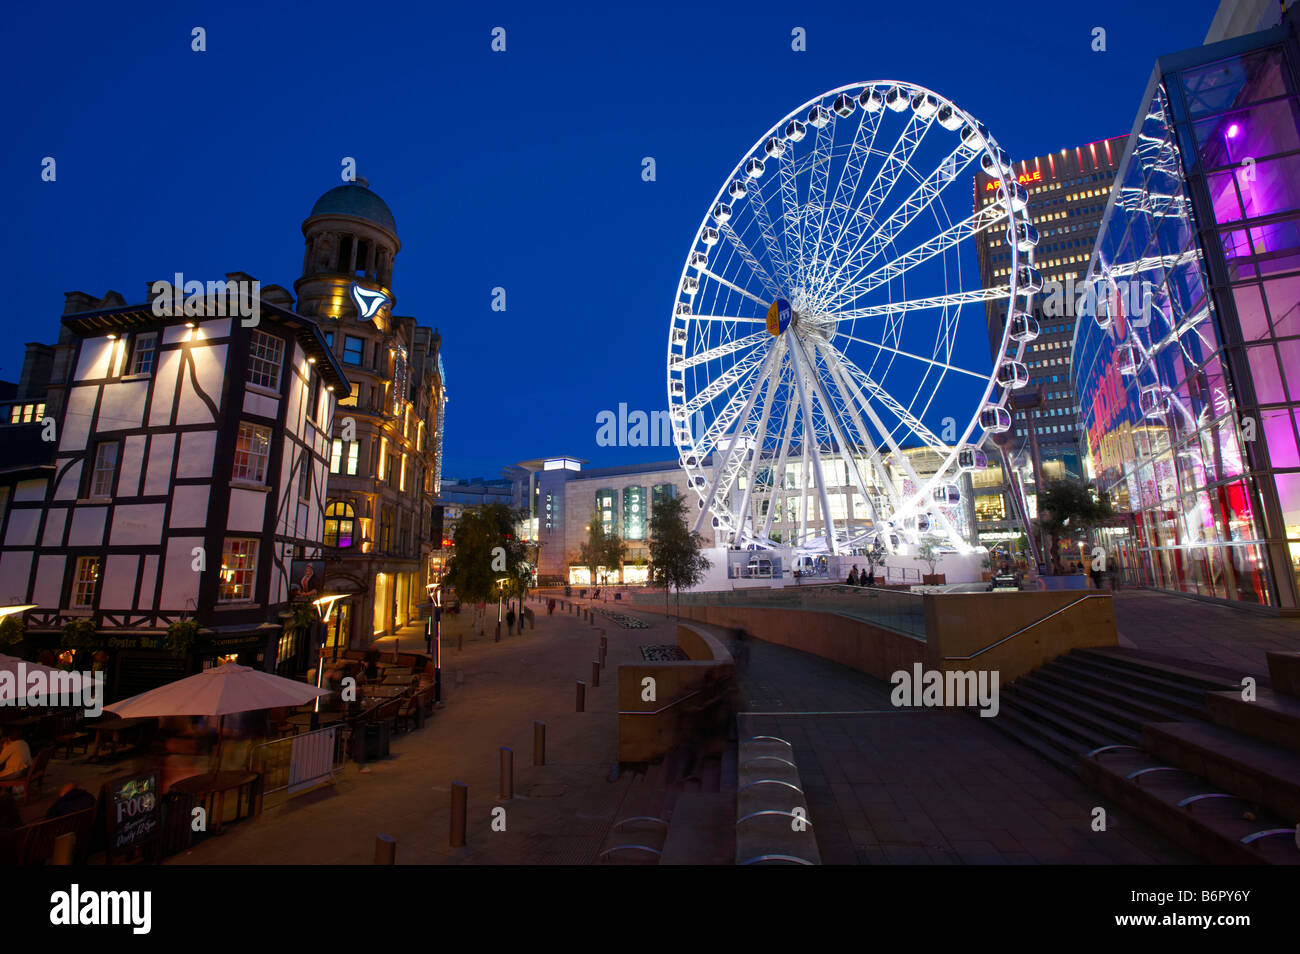 Manchester At Night - Stock Image